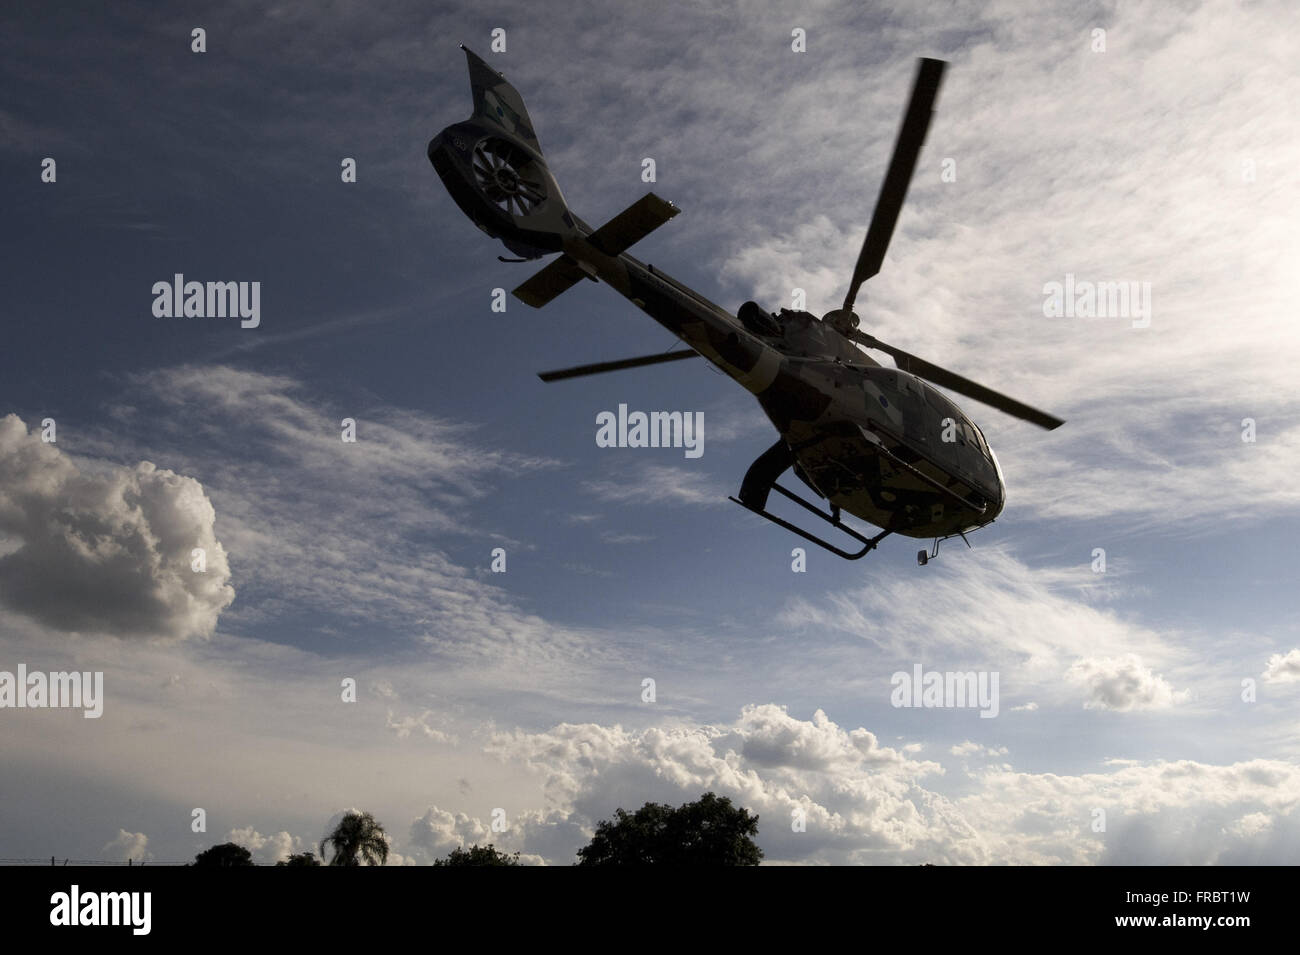 Police aboard the helicopter GRAER Grouping Aereo military police of Parana - Stock Image